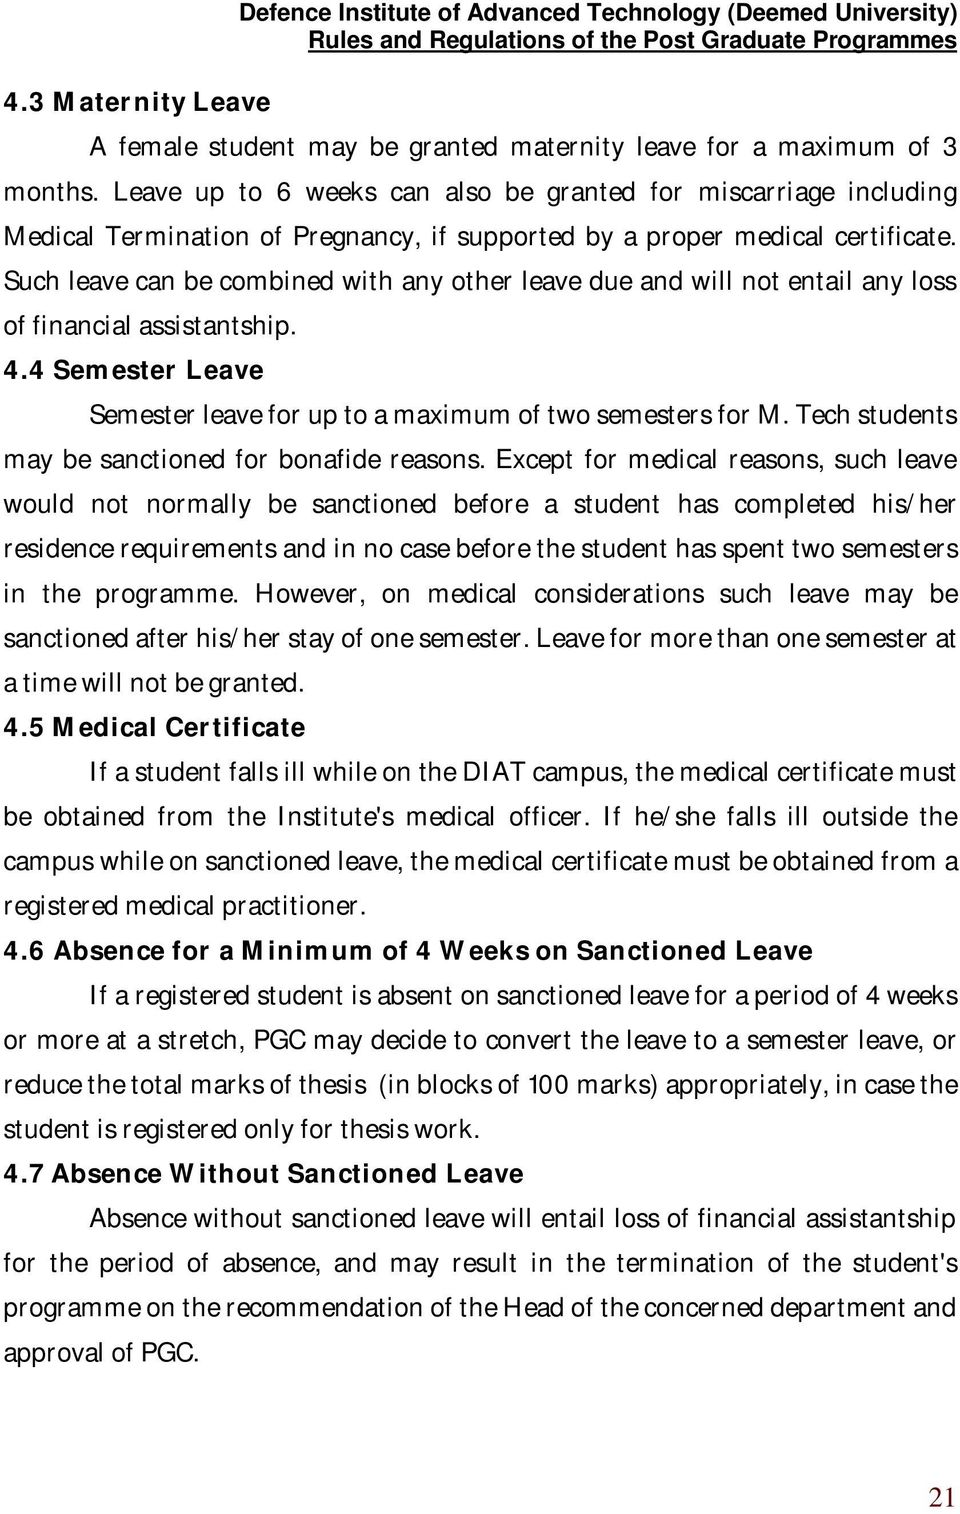 Such leave can be combined with any other leave due and will not entail any loss of financial assistantship. 4.4 Semester Leave Semester leave for up to a maximum of two semesters for M.